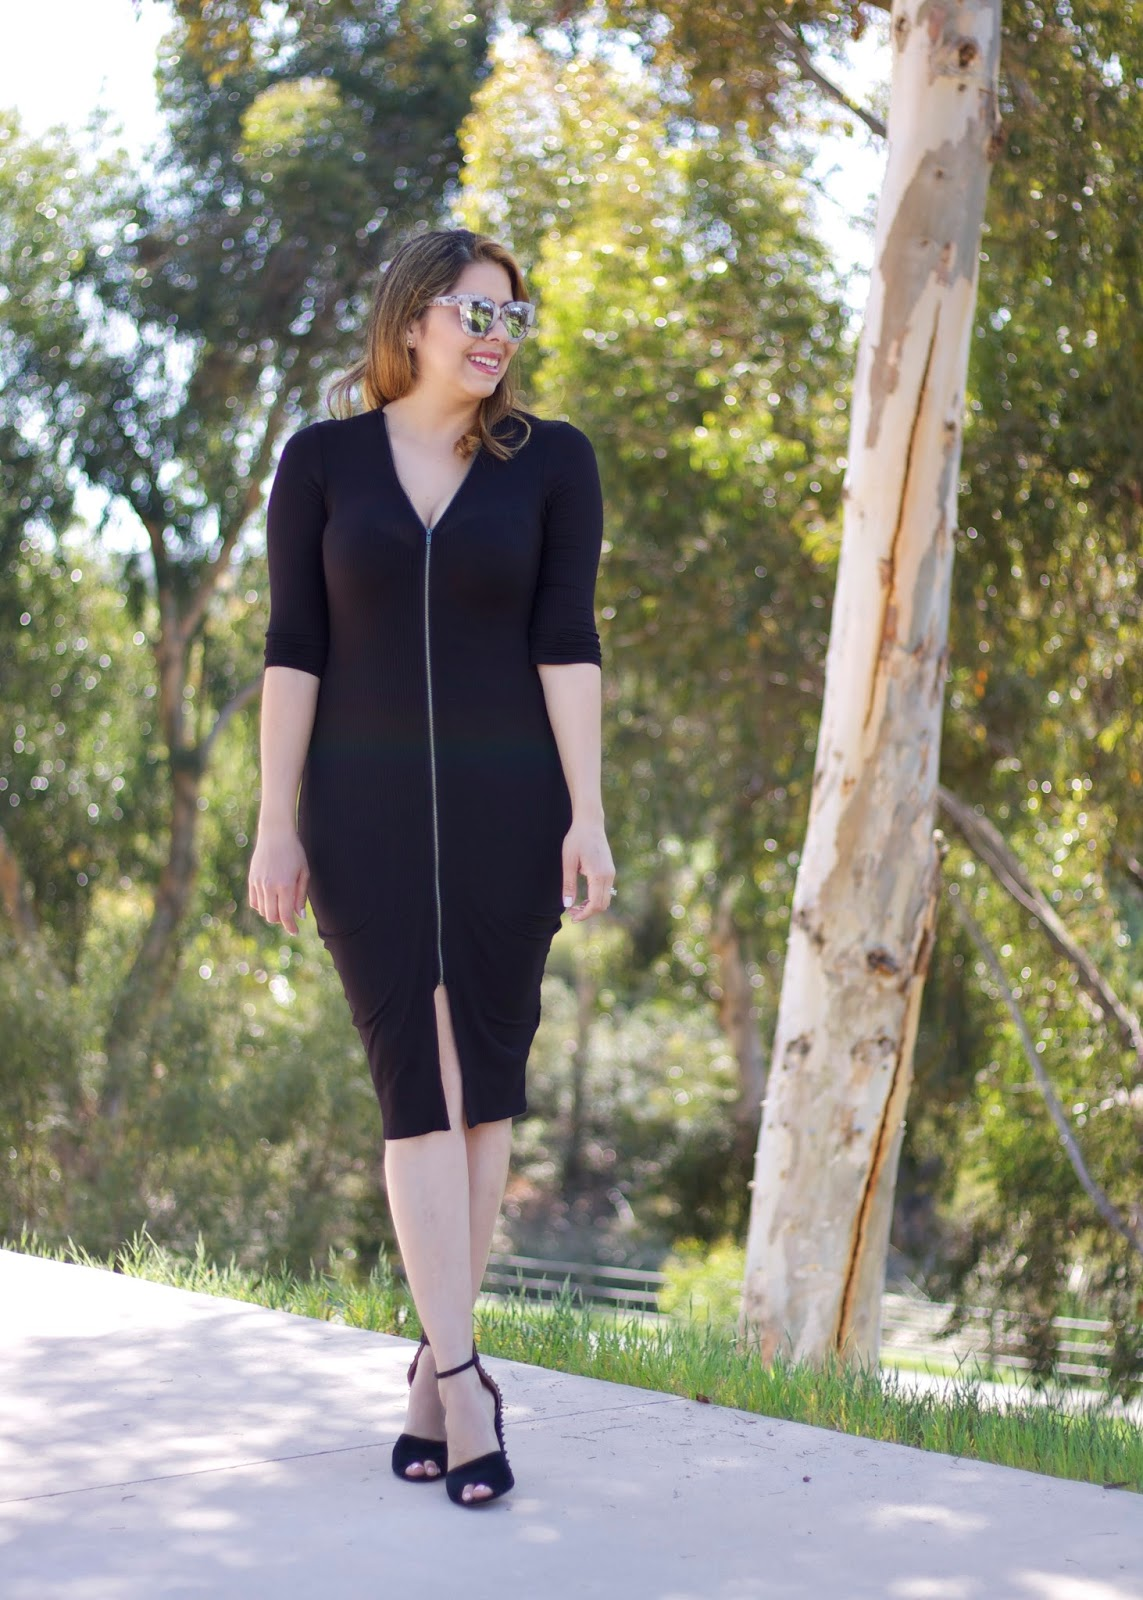 Black Midi Dress, Nicki Minaj collection dress, san diego fashion blogger, san diego style blogger